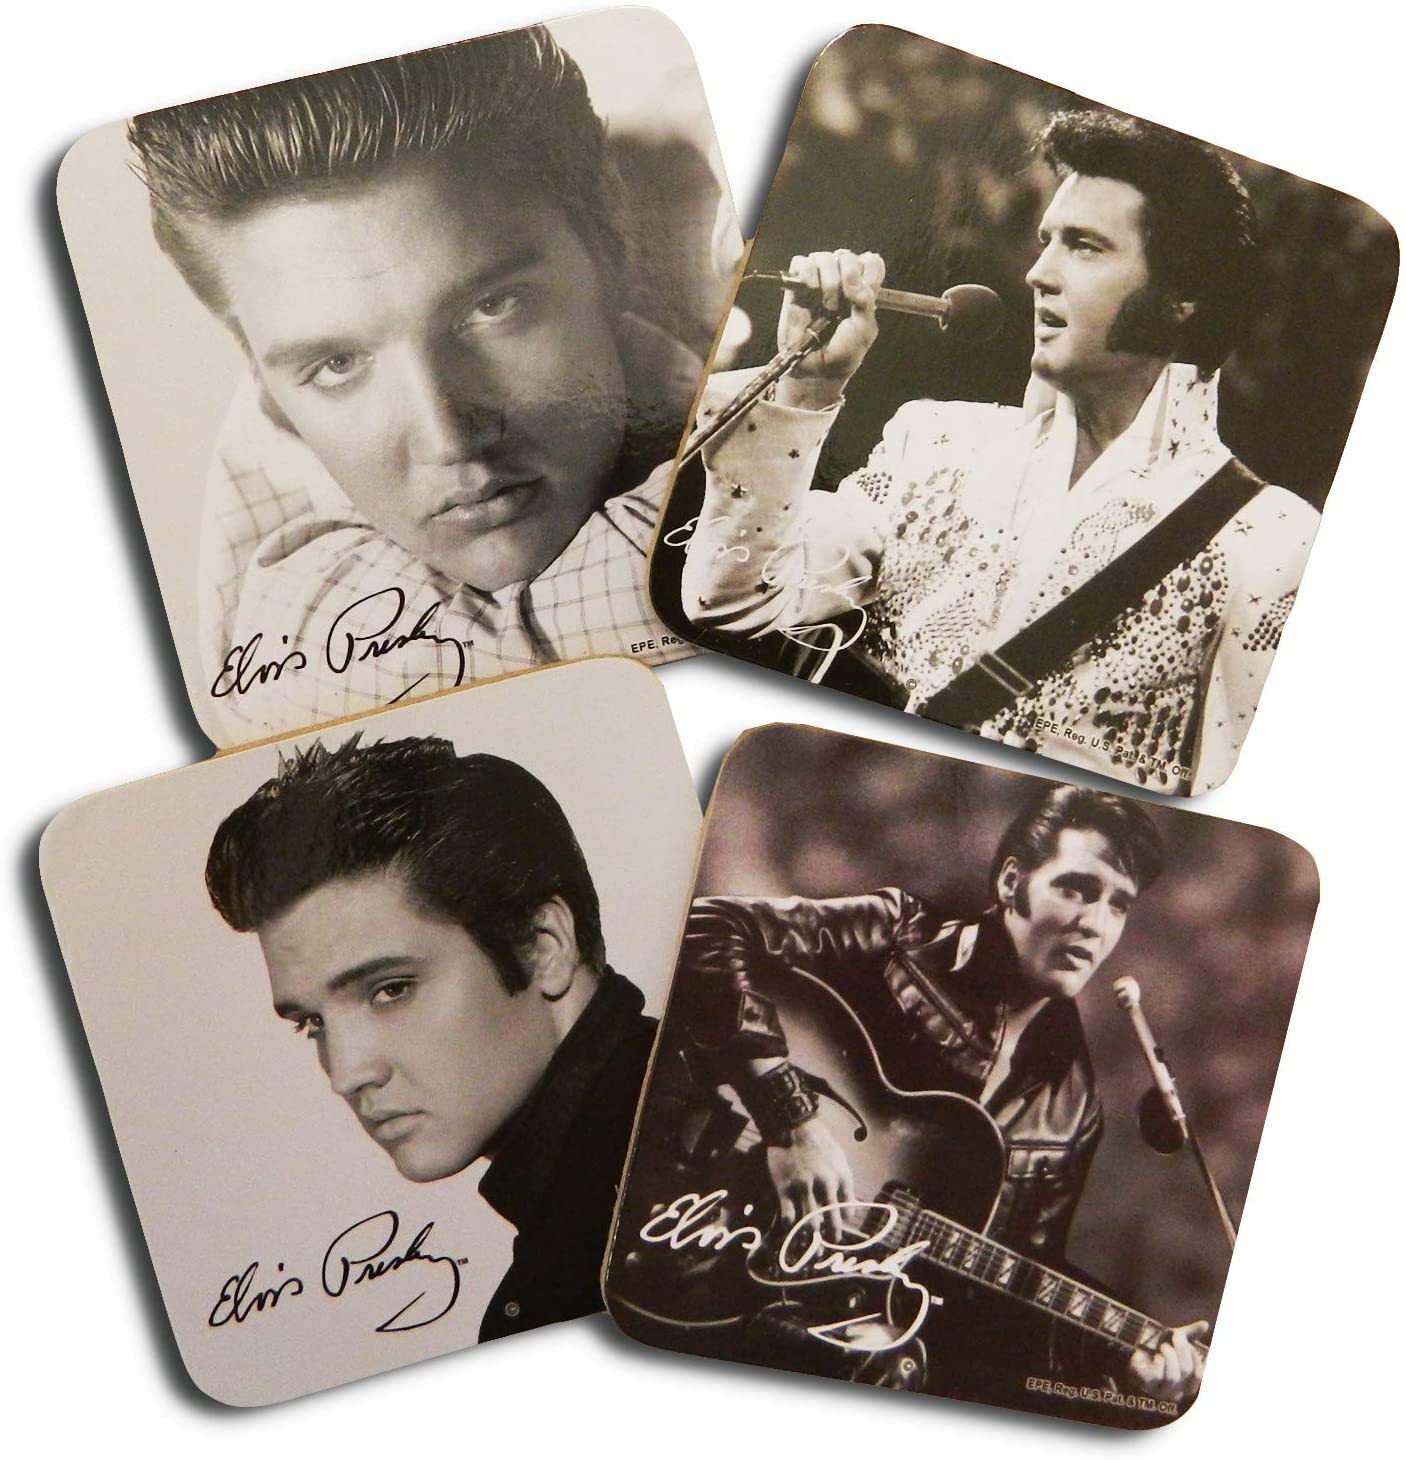 Elvis Presley Wooden coasters, set of 4